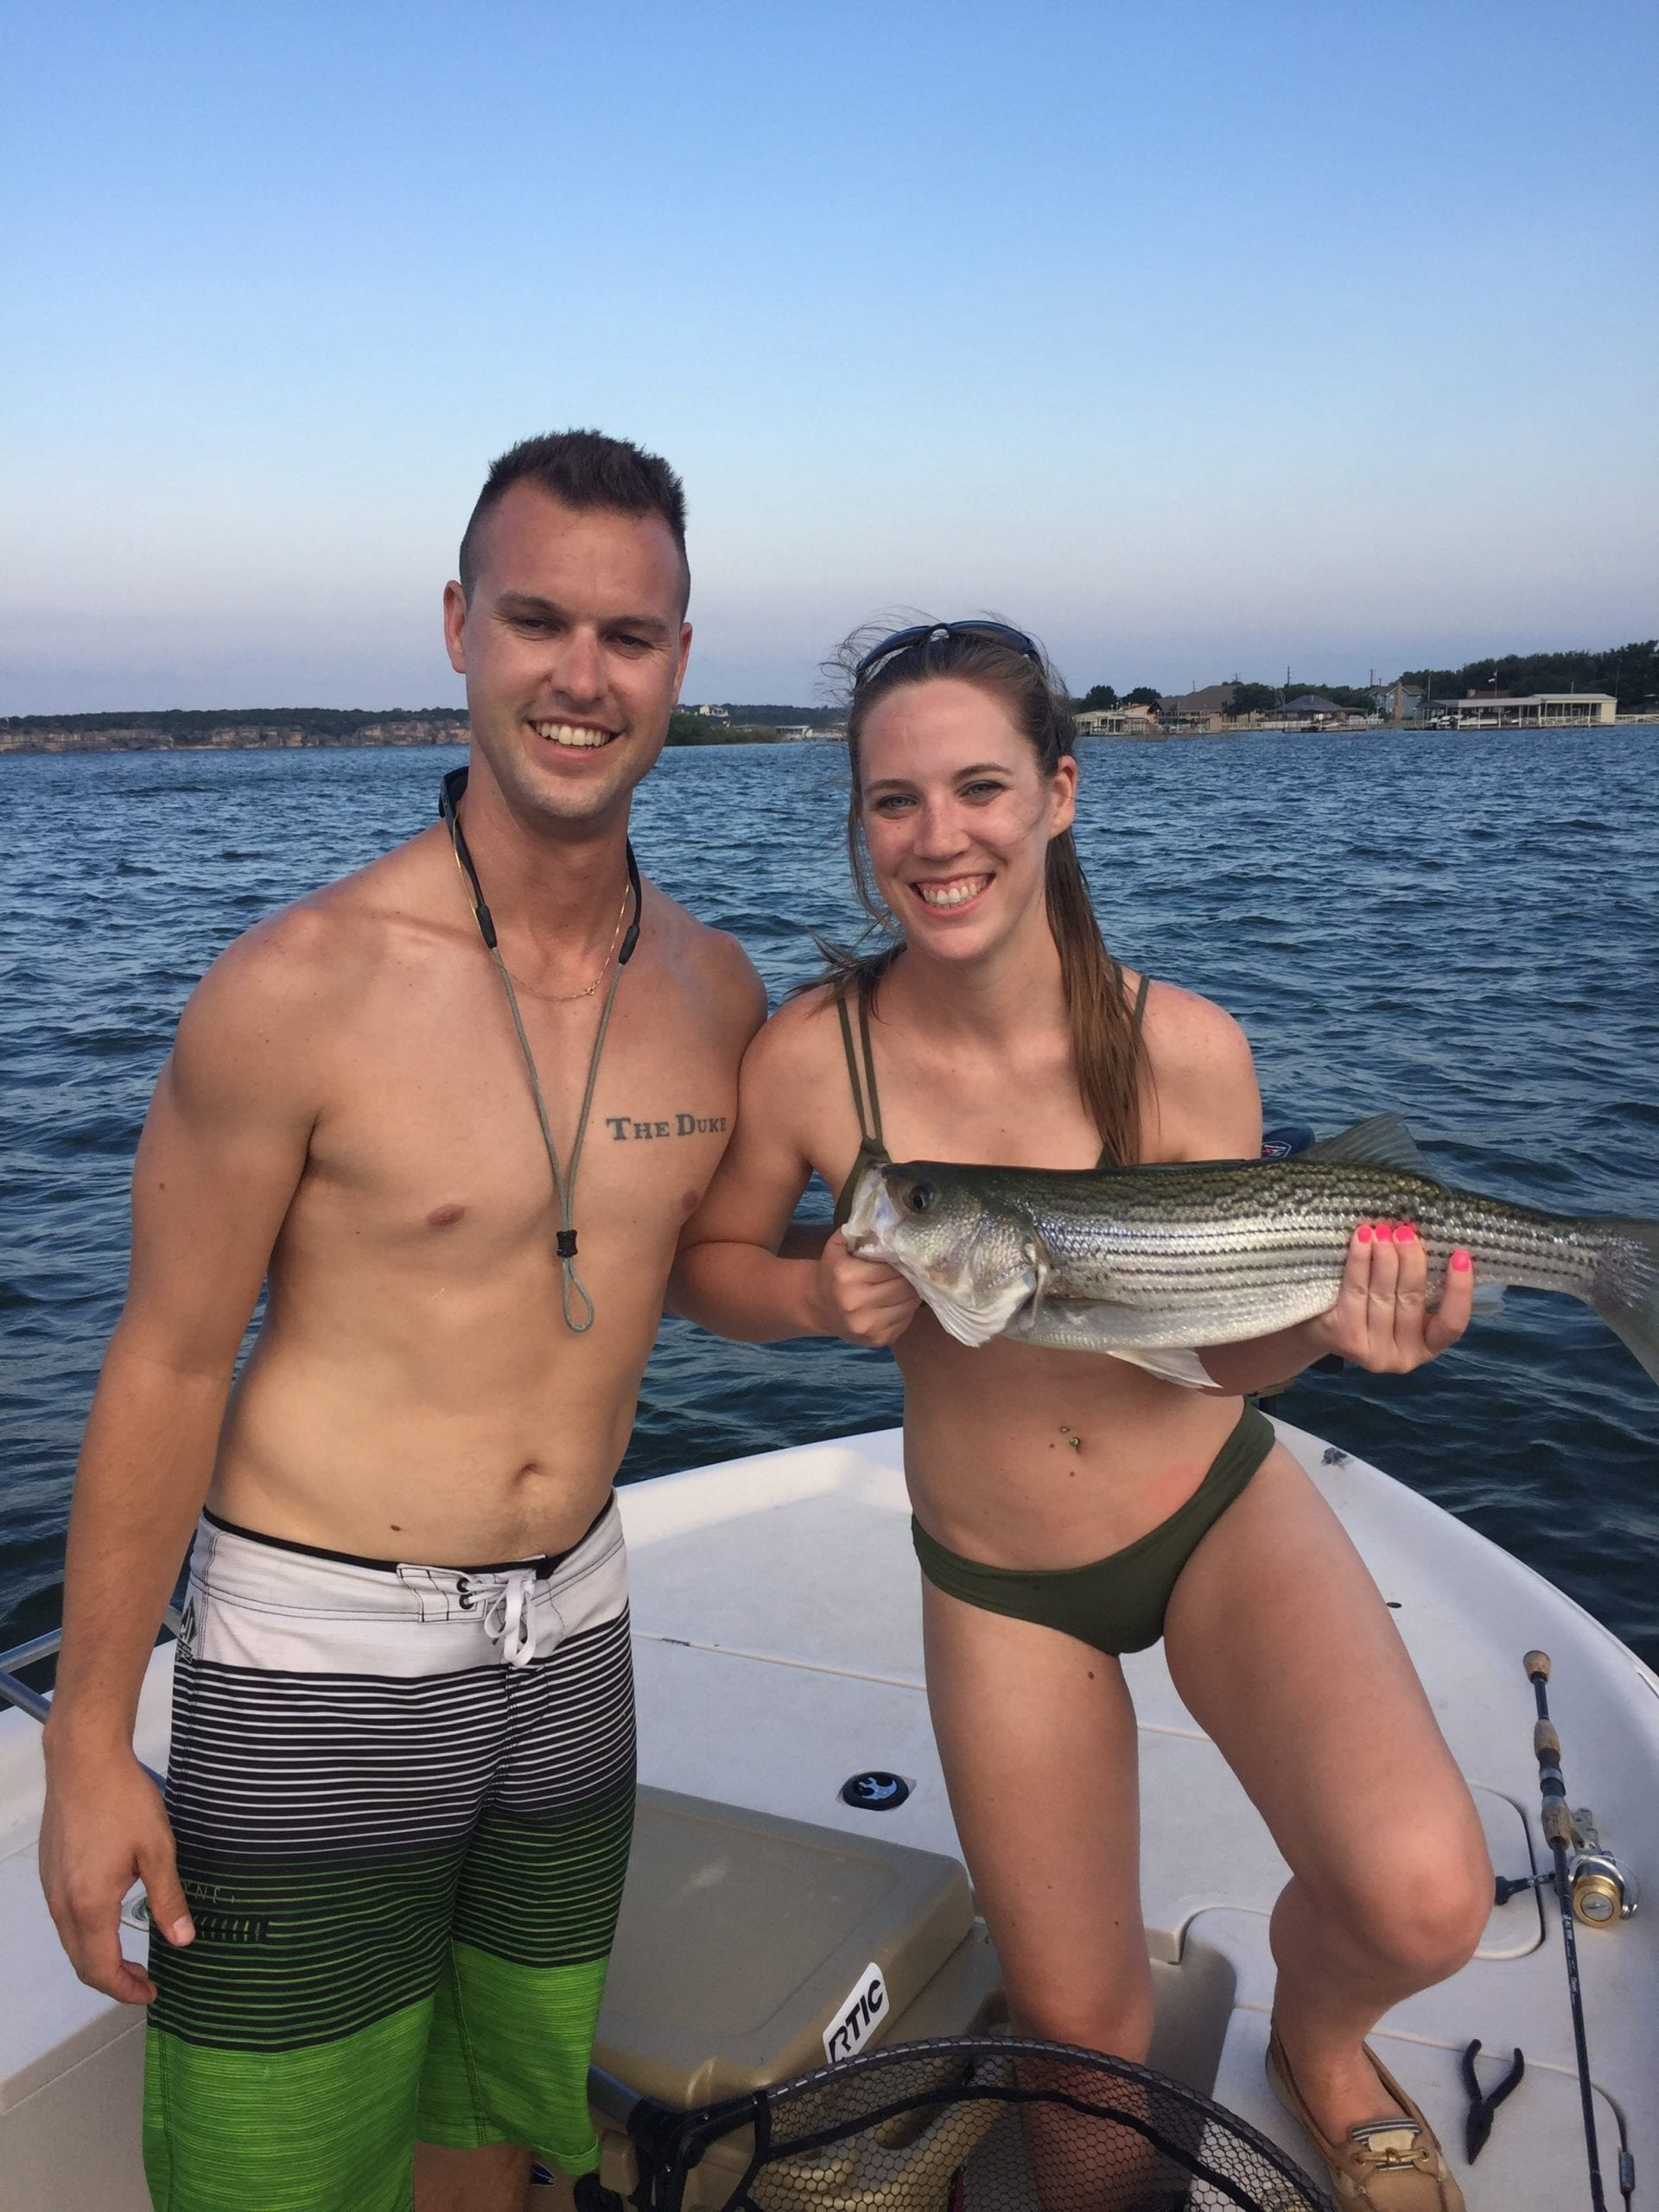 First striper for this couple.